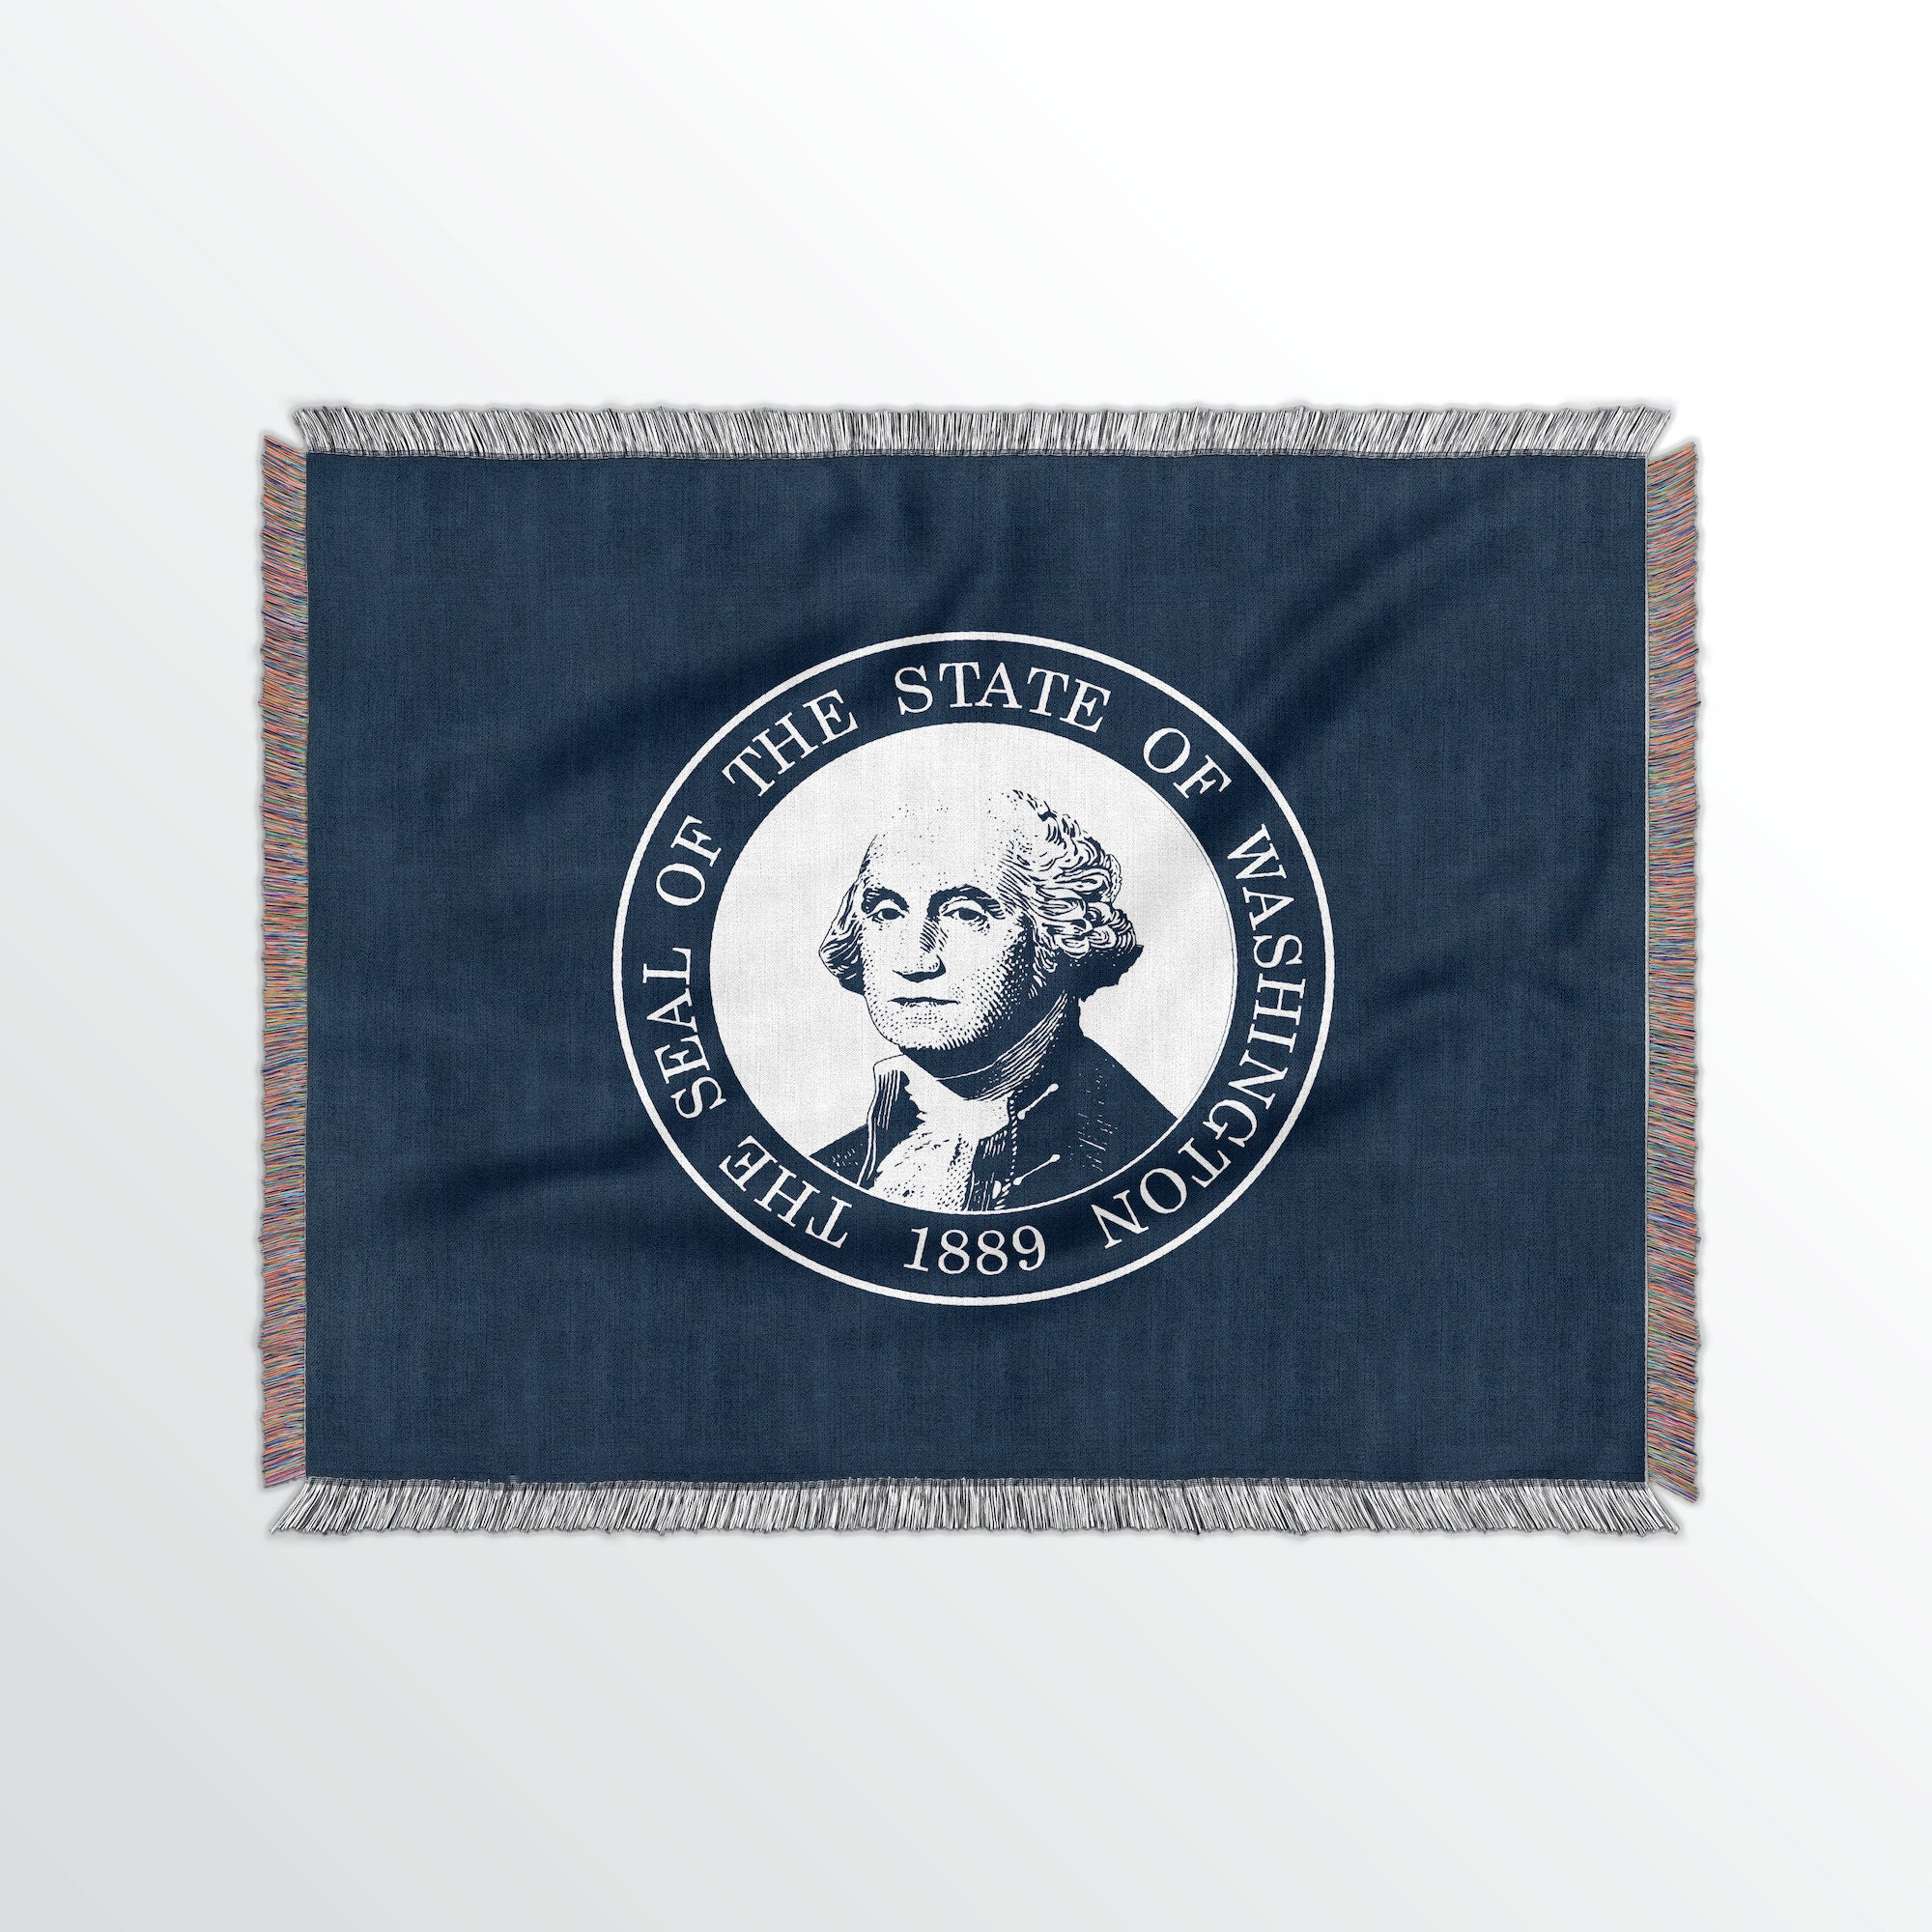 Washington State Woven Cotton Blanet - Point Two Design